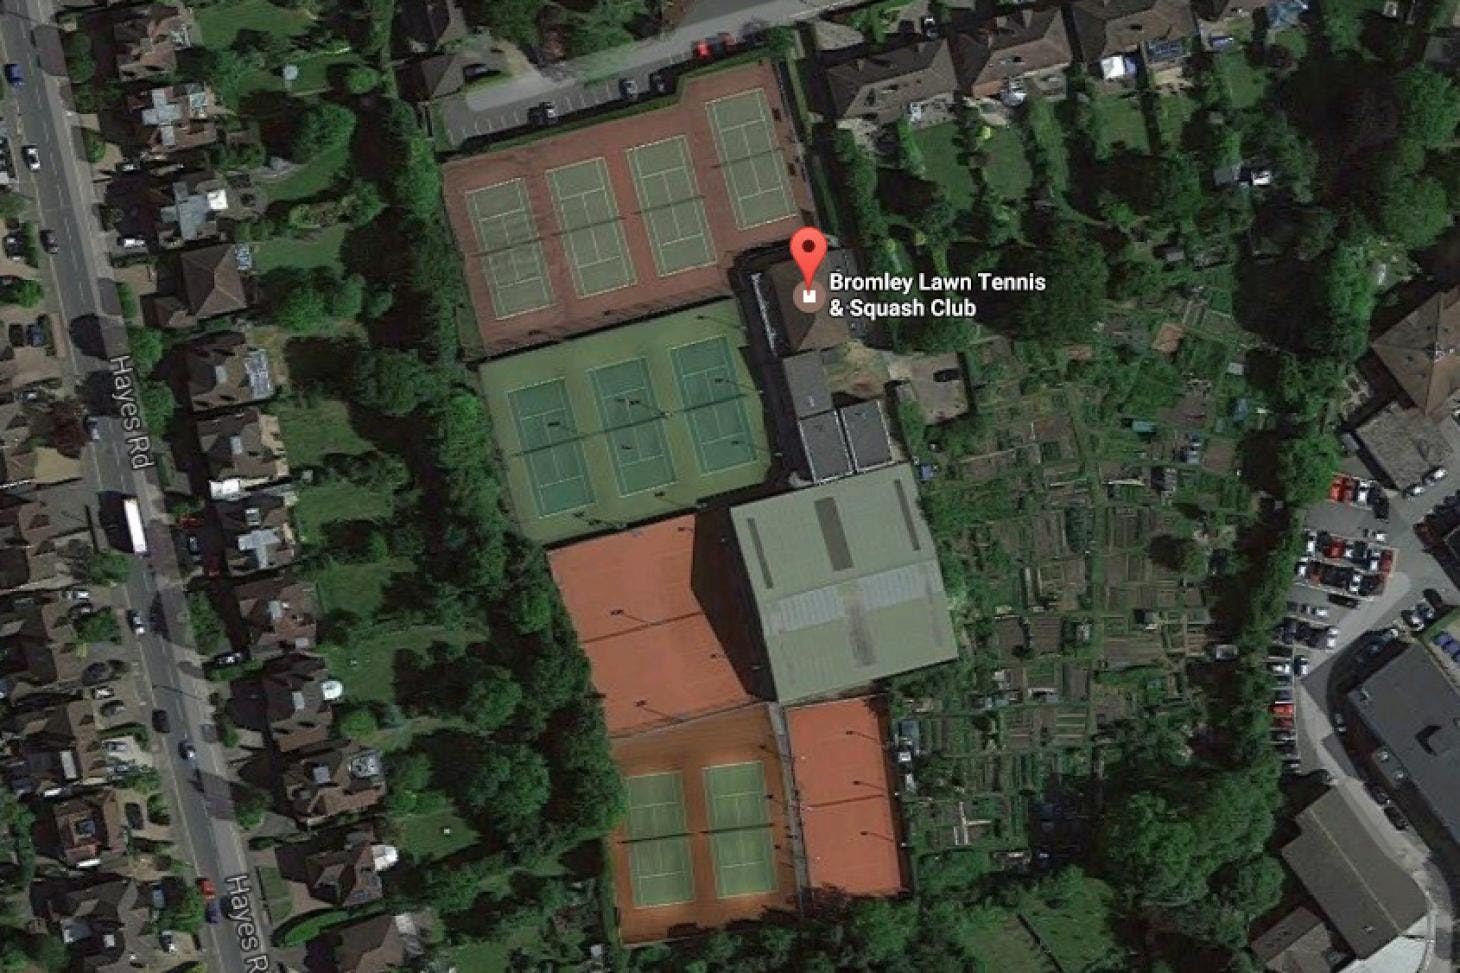 Bromley Lawn Tennis and Squash Club Outdoor | Astroturf tennis court